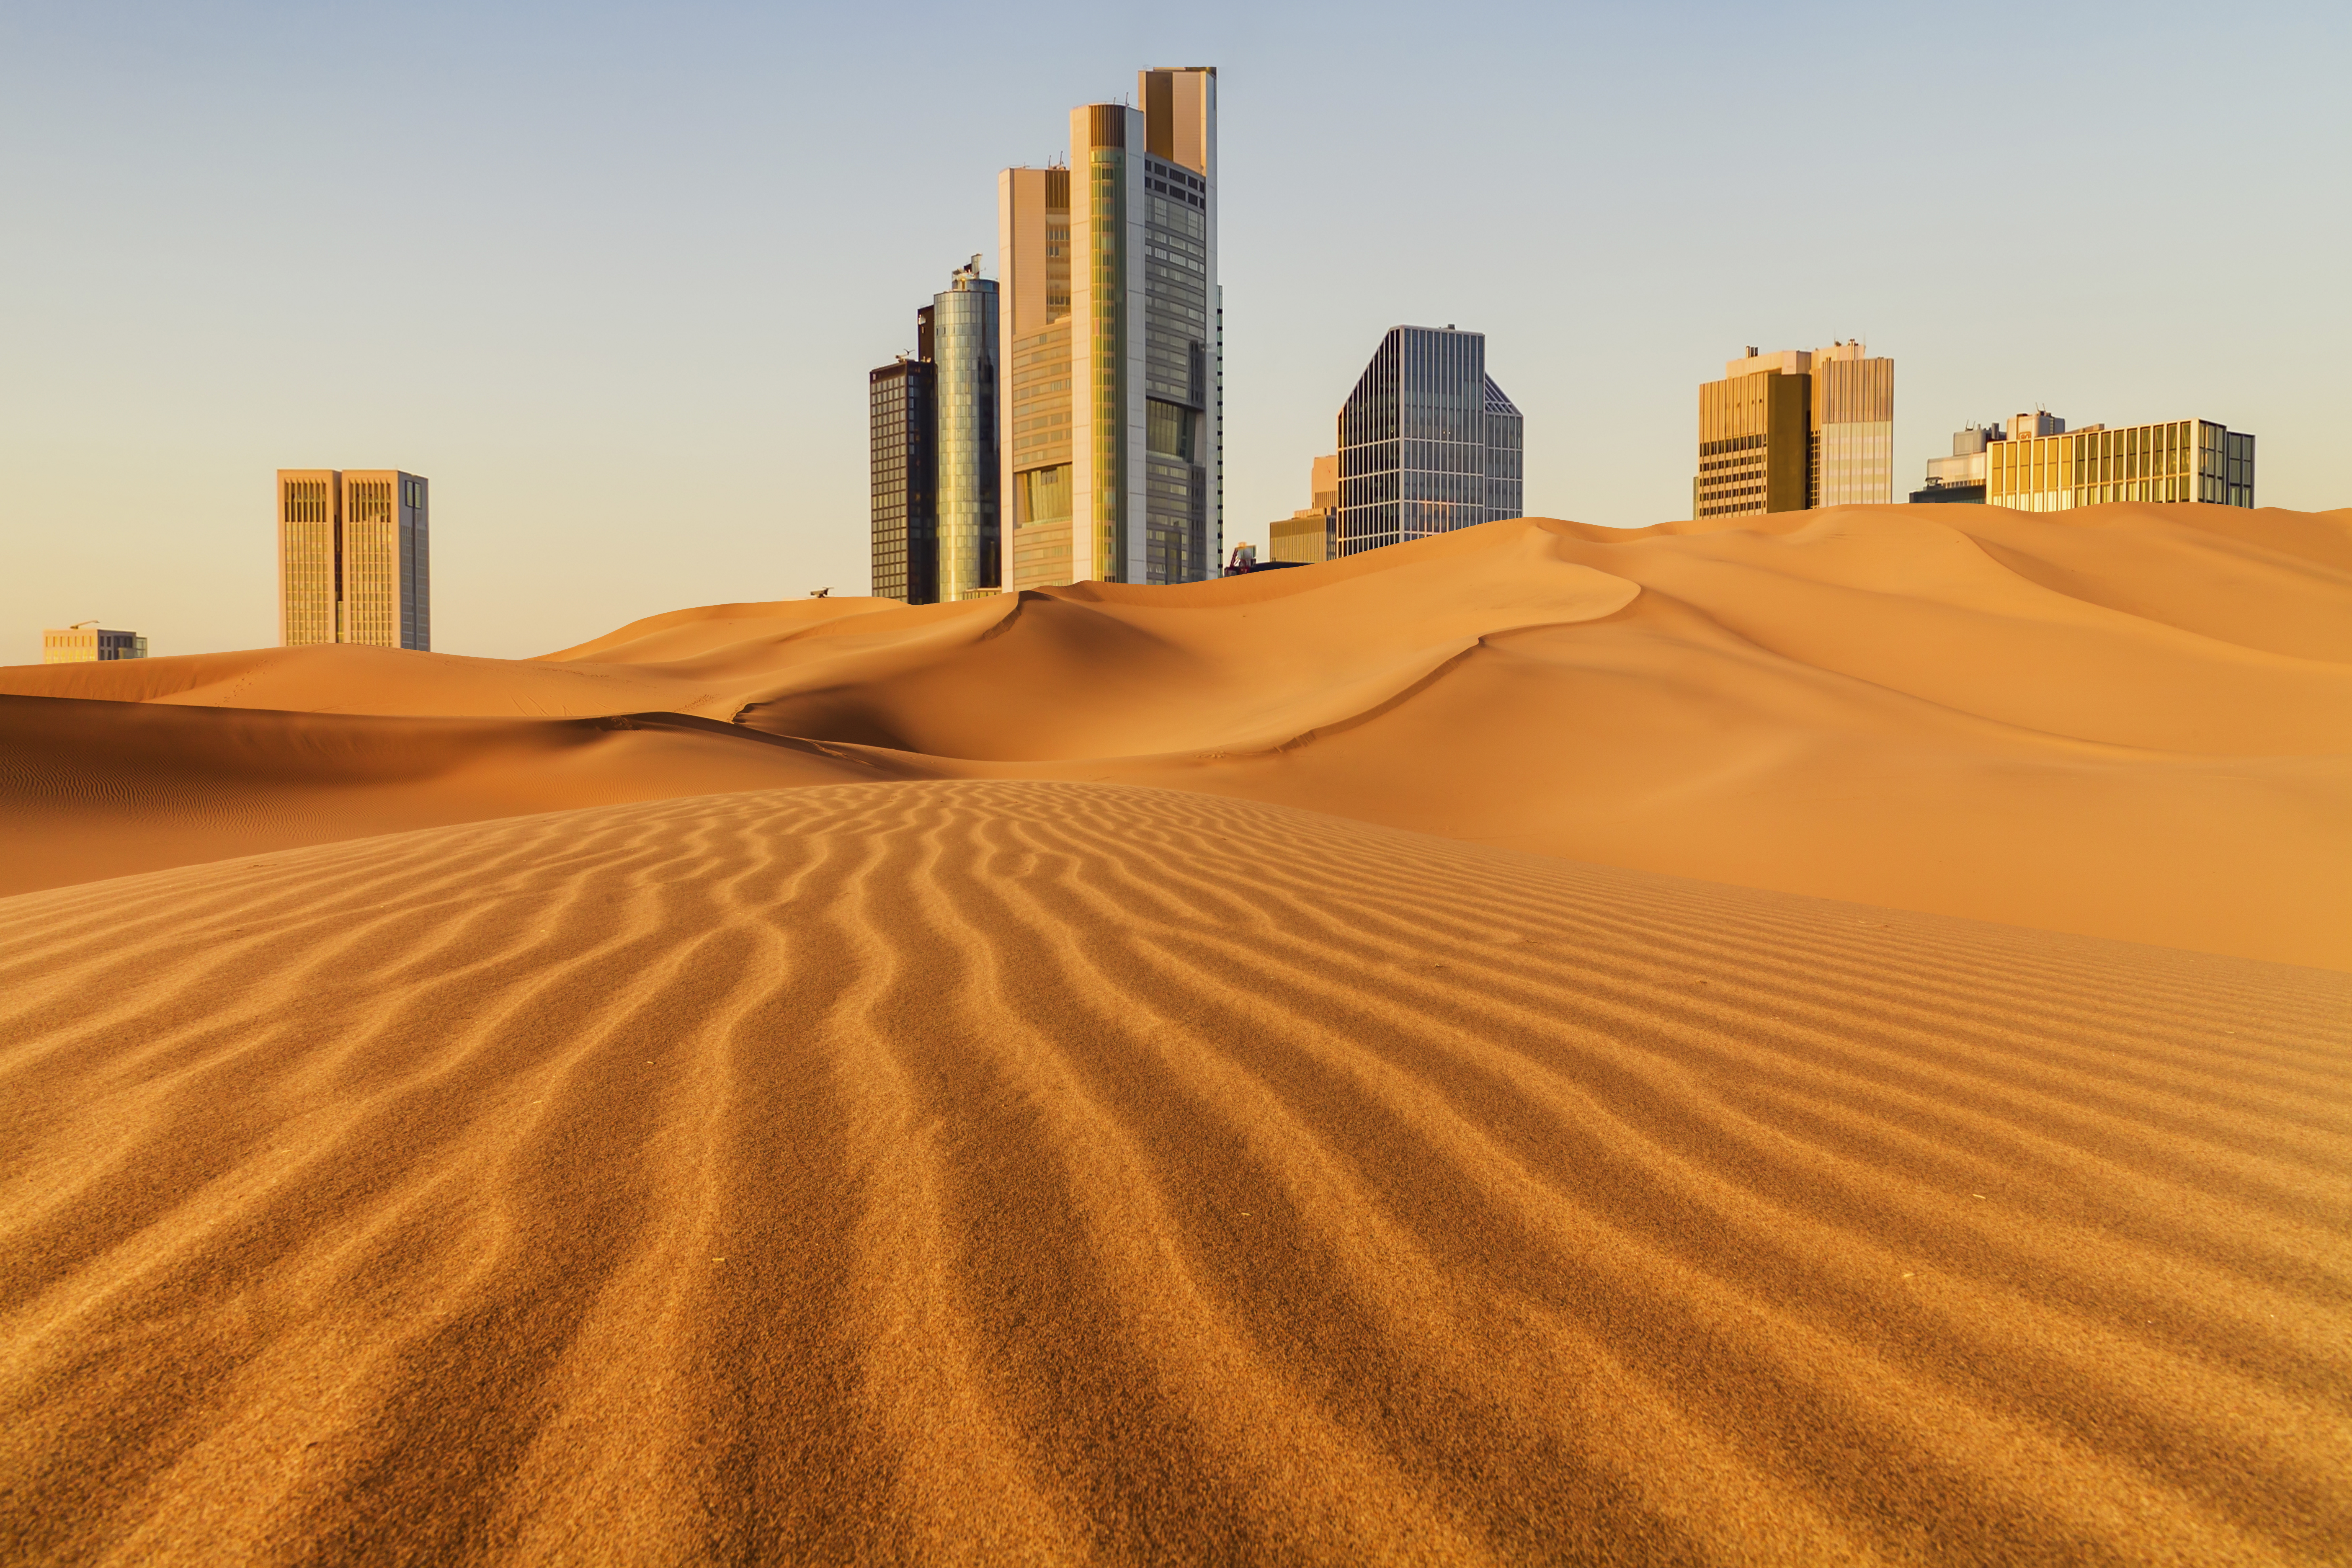 Image of a City within a desert